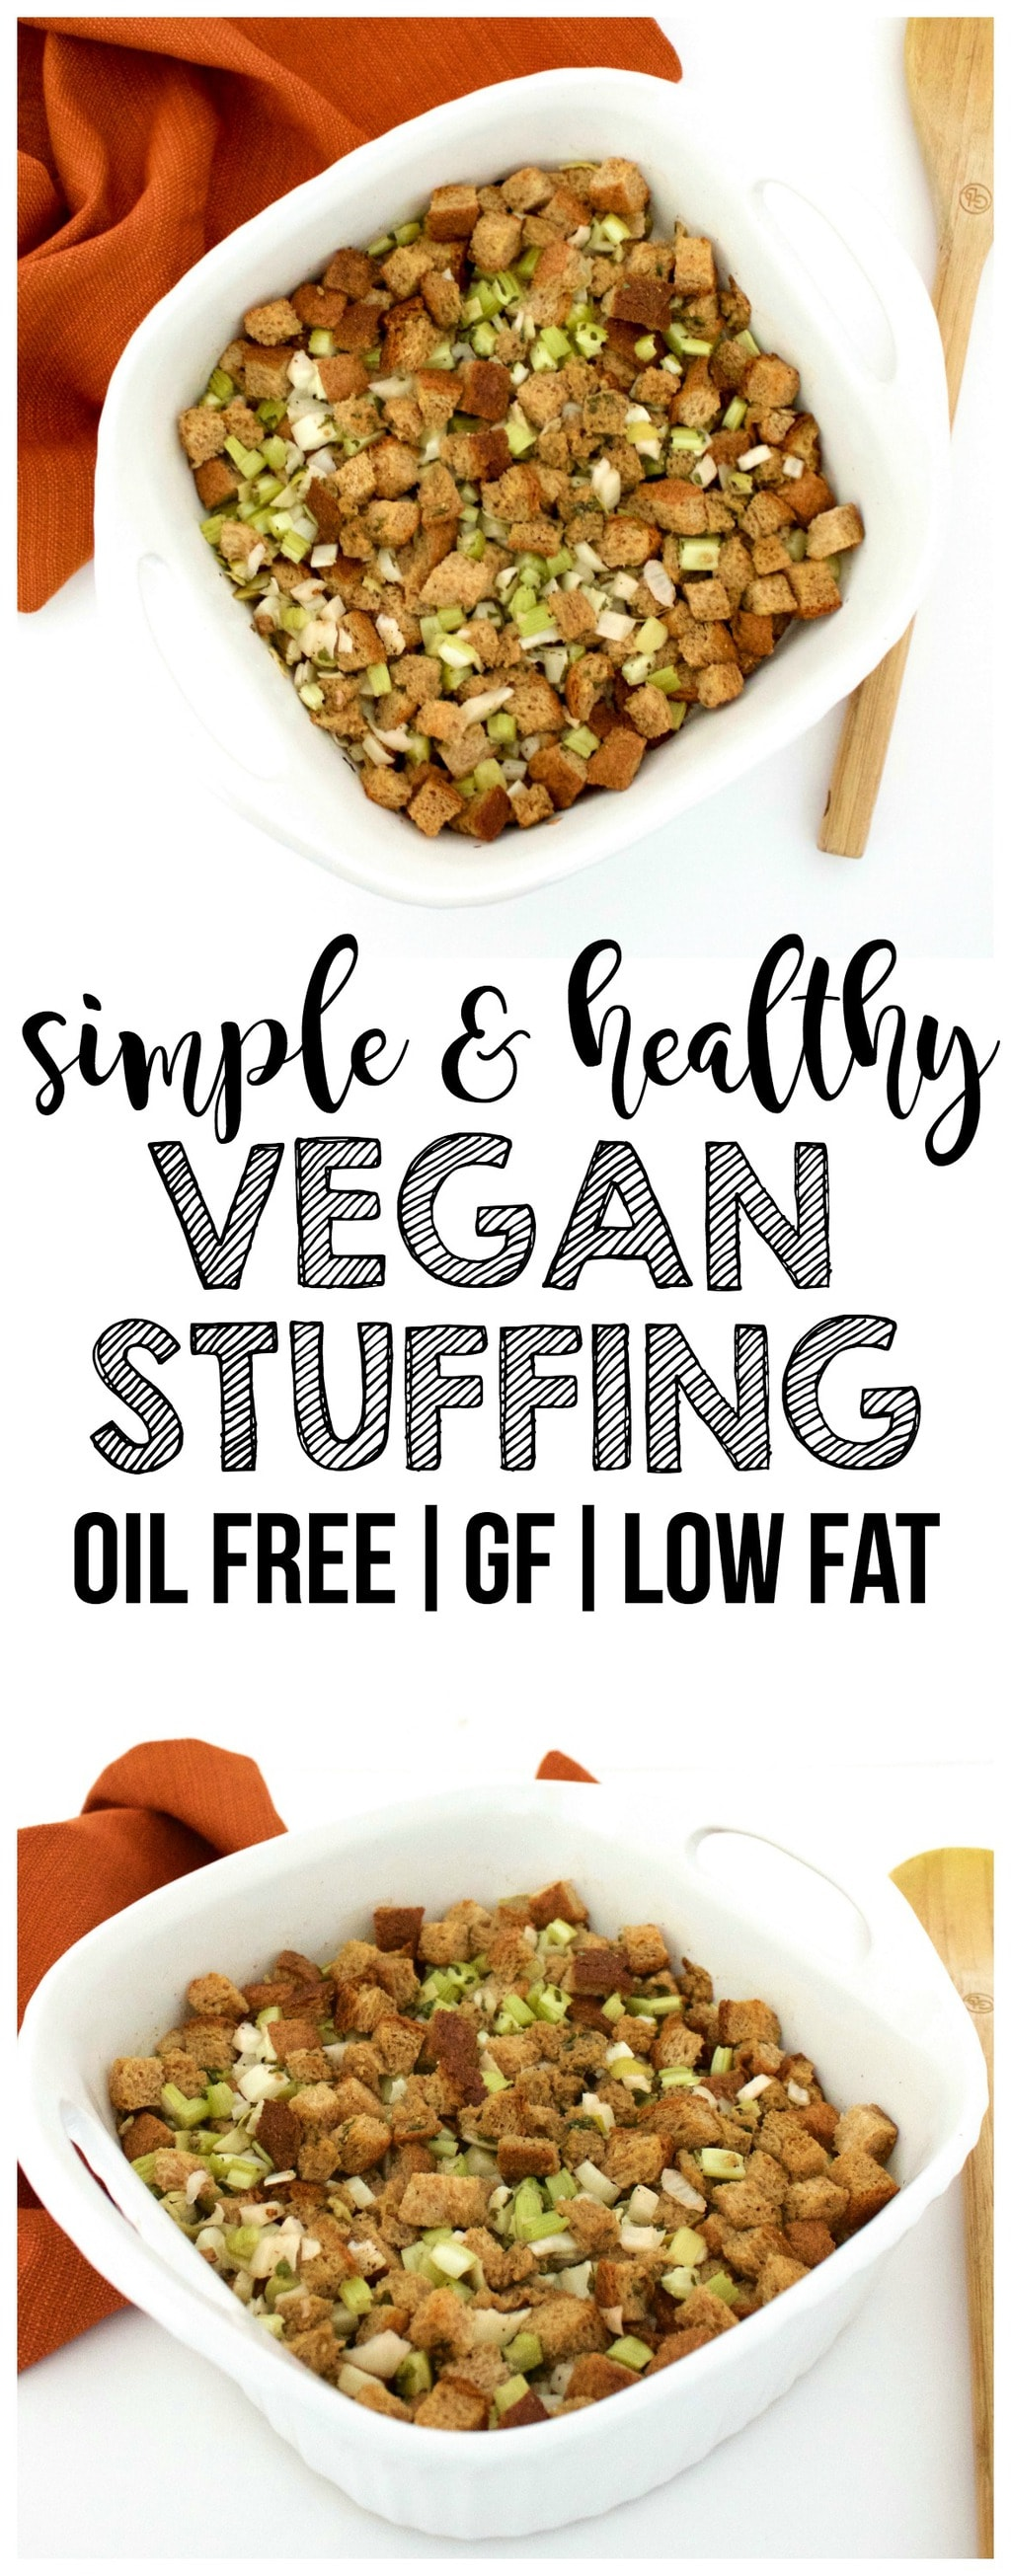 Simple Vegan Stuffing (Gluten-Free, Oil-Free, Low-Fat, Dairy-Free)